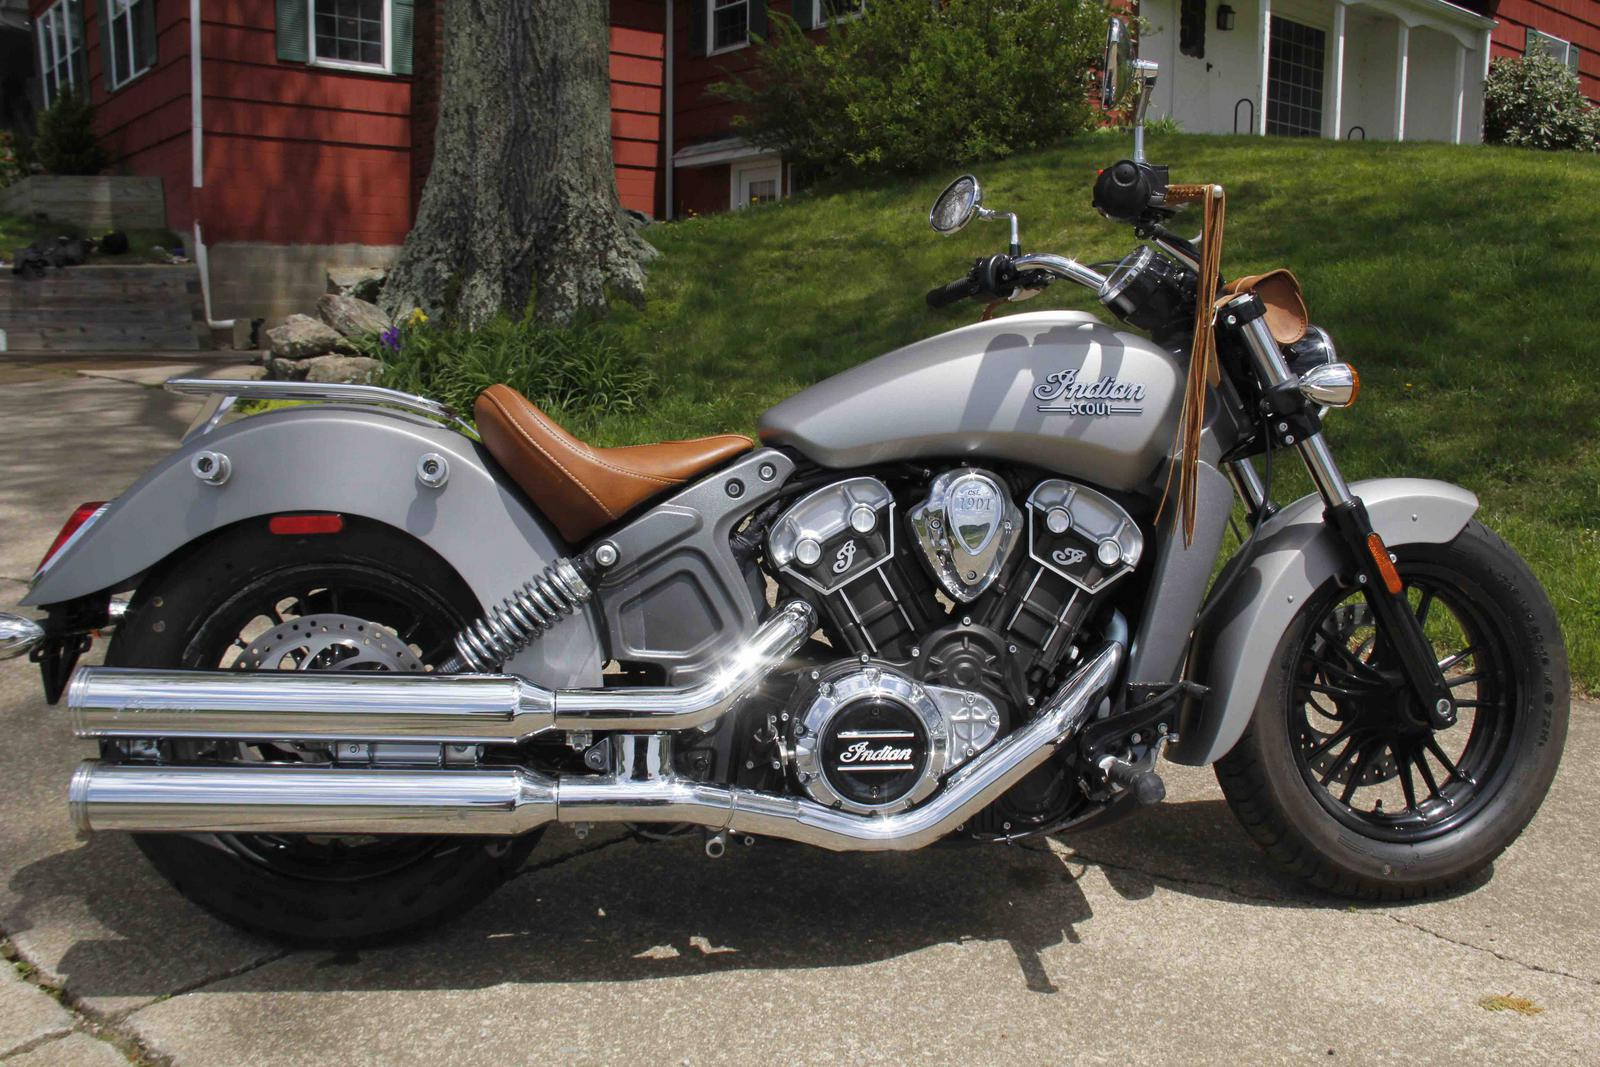 Inventory from Indian Motorcycle and ICE BEAR Midwest